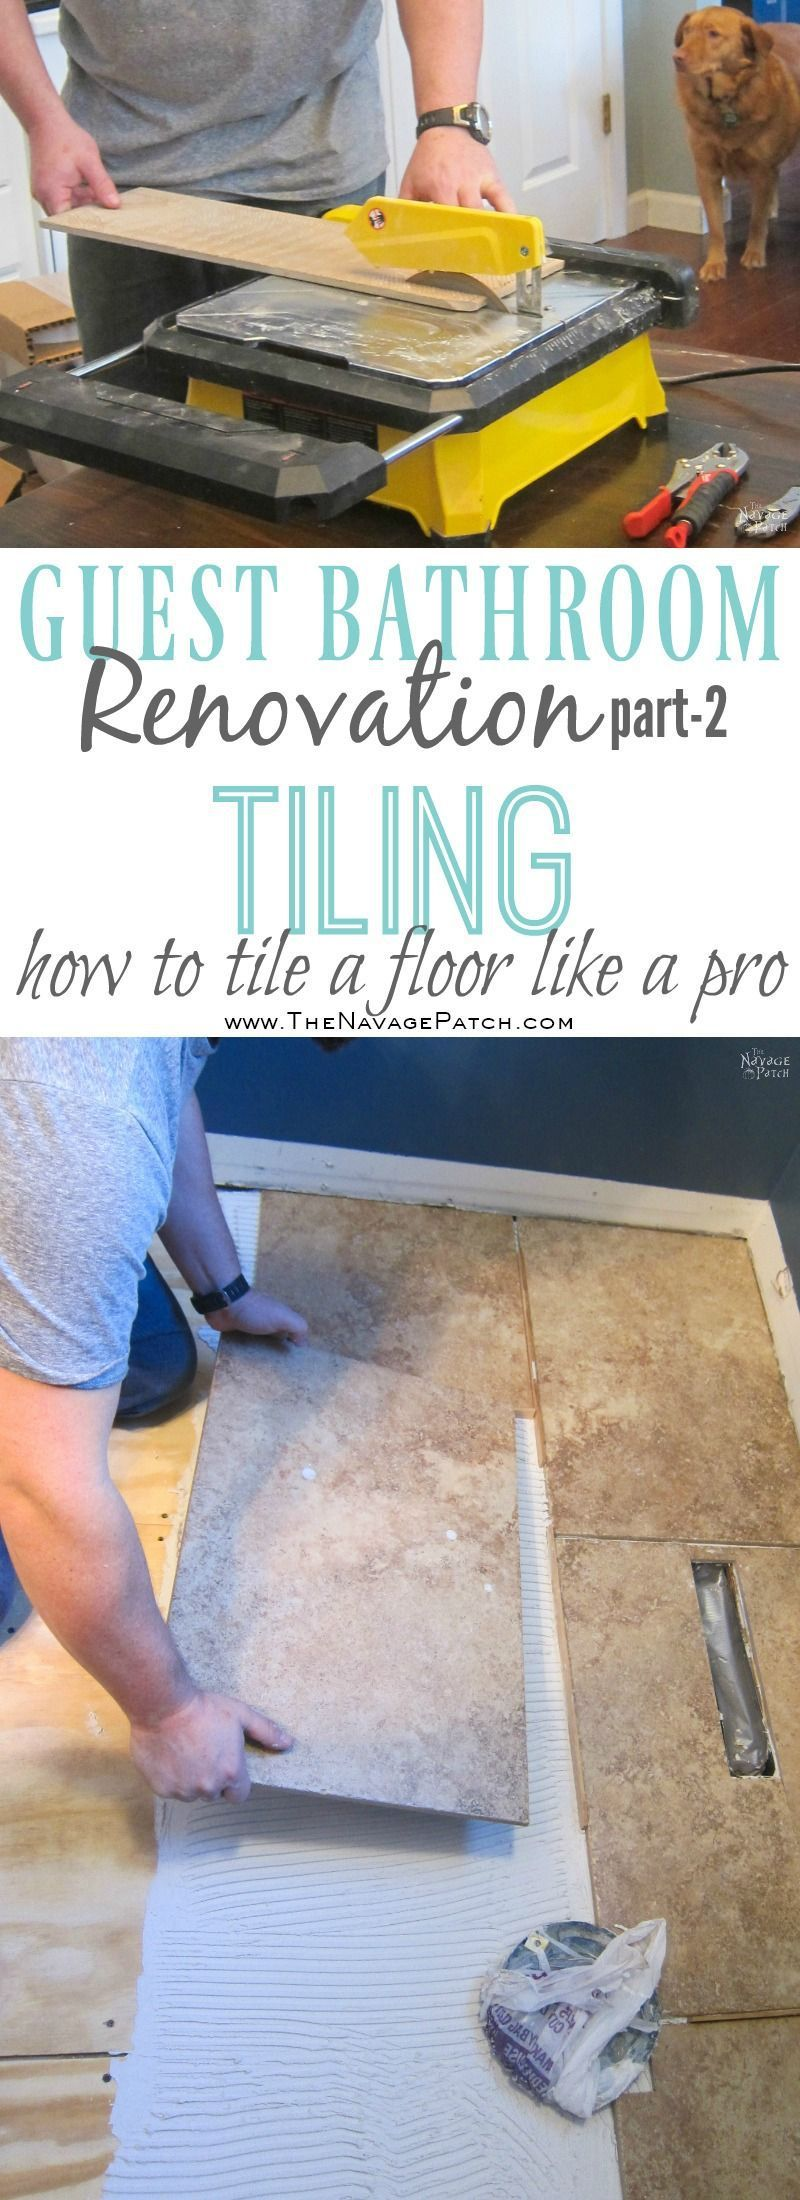 Guest Bathroom Renovation How To Tile A Floor Like A Pro Diy